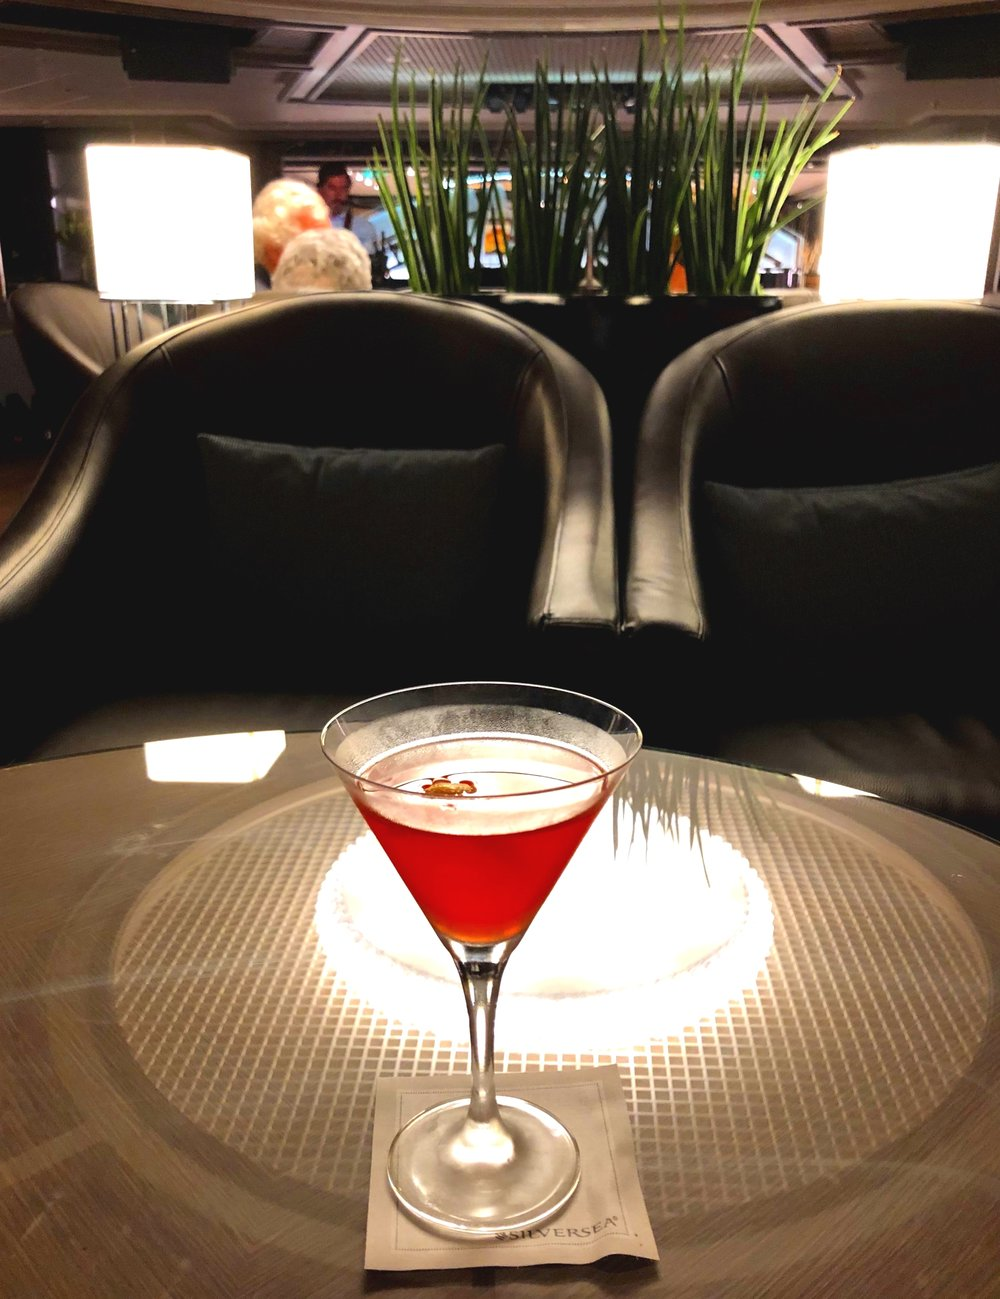 Cocktails in the Dolce Vita lounge.